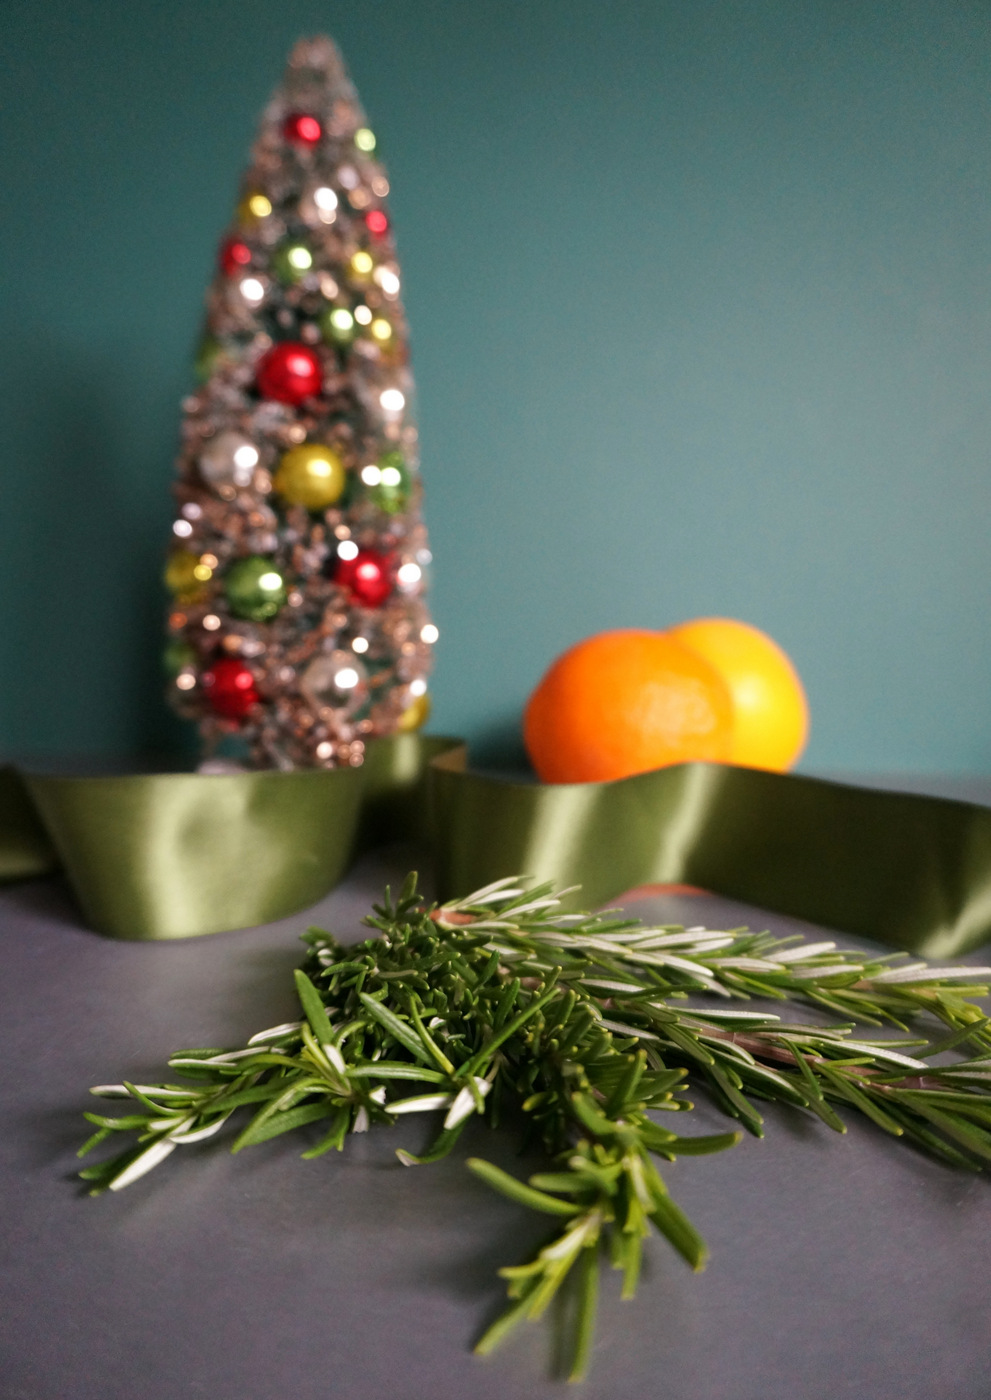 Rosemary adds a fragrant holiday touch